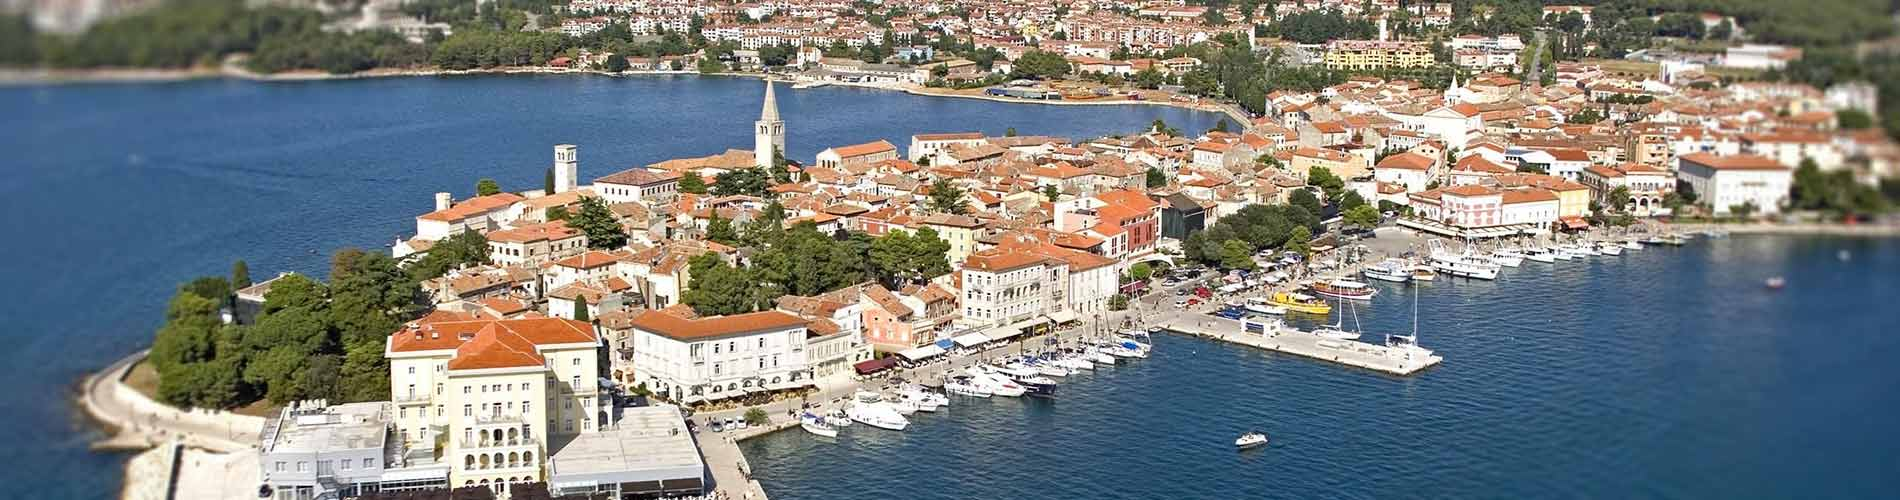 Aerial view of Porec.jpg